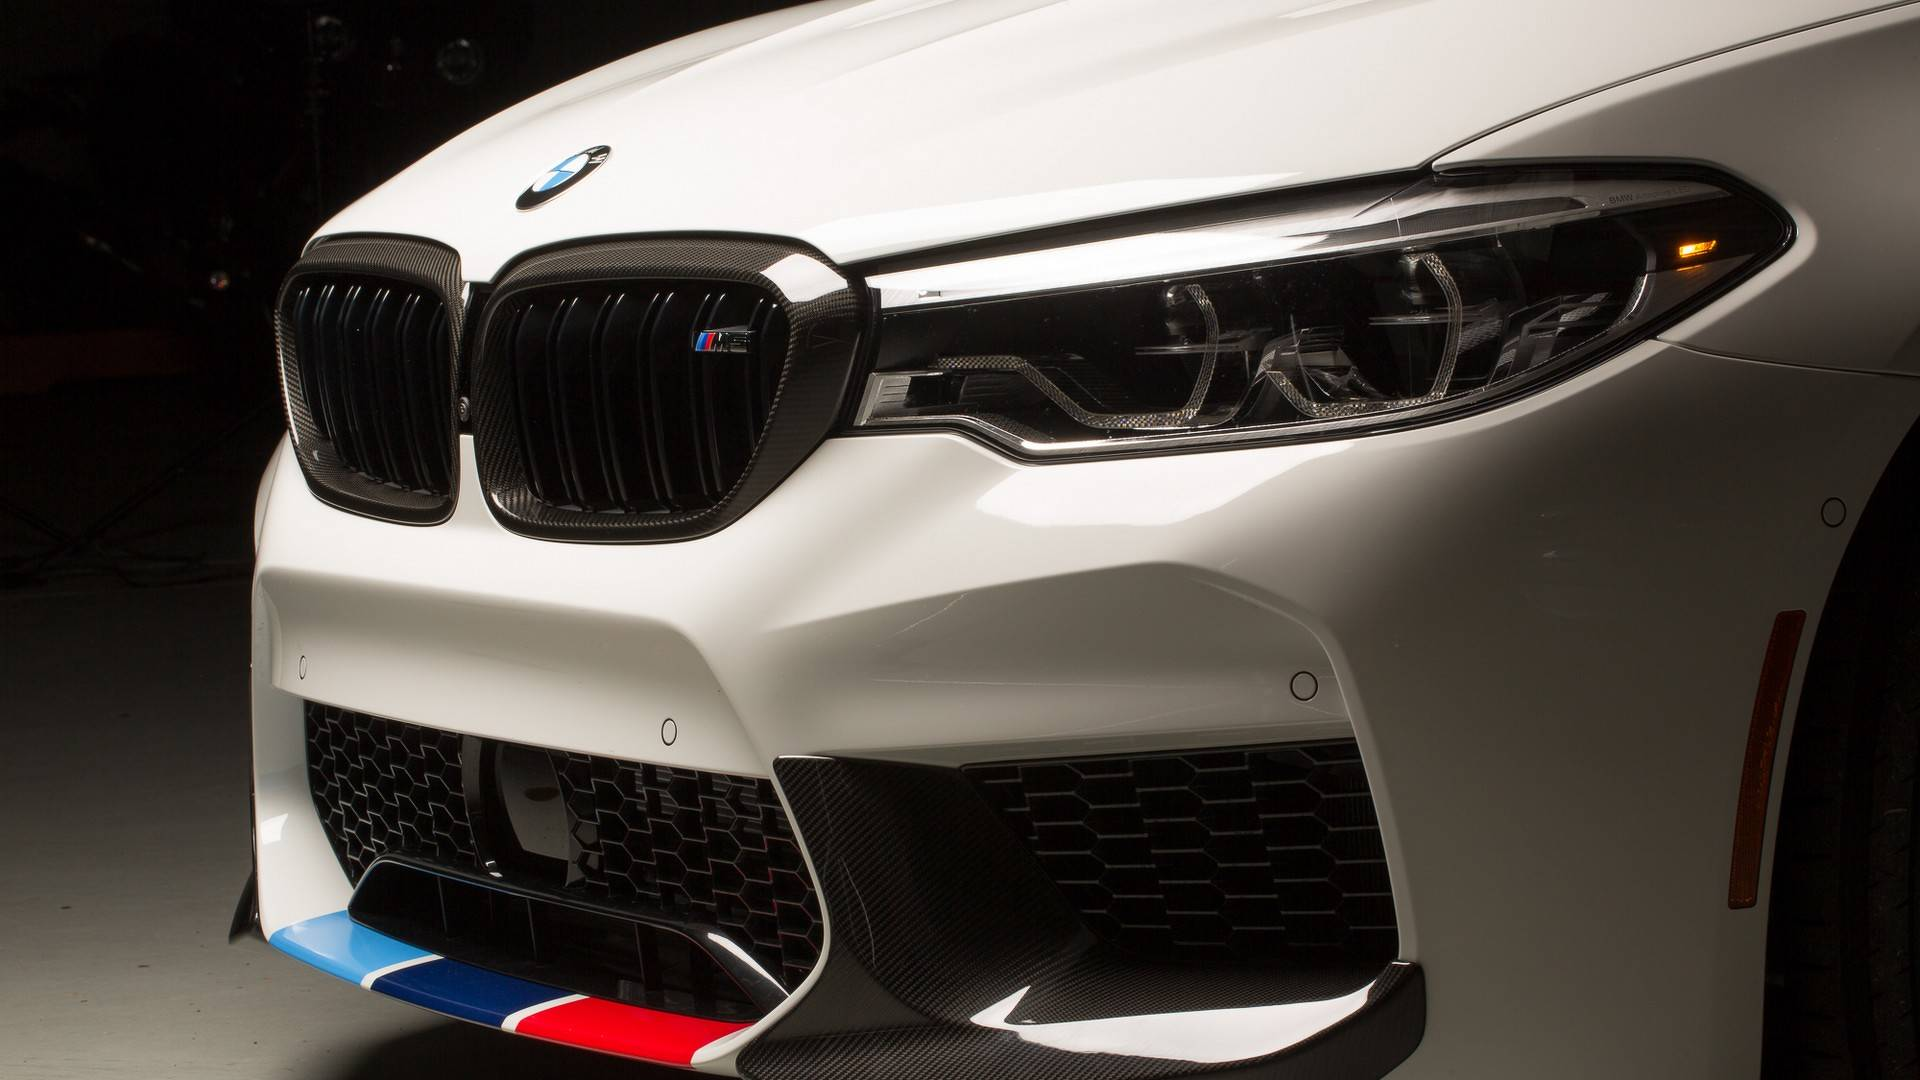 On Connait Enfin La Puissance De La Bmw M5 Pack Competition